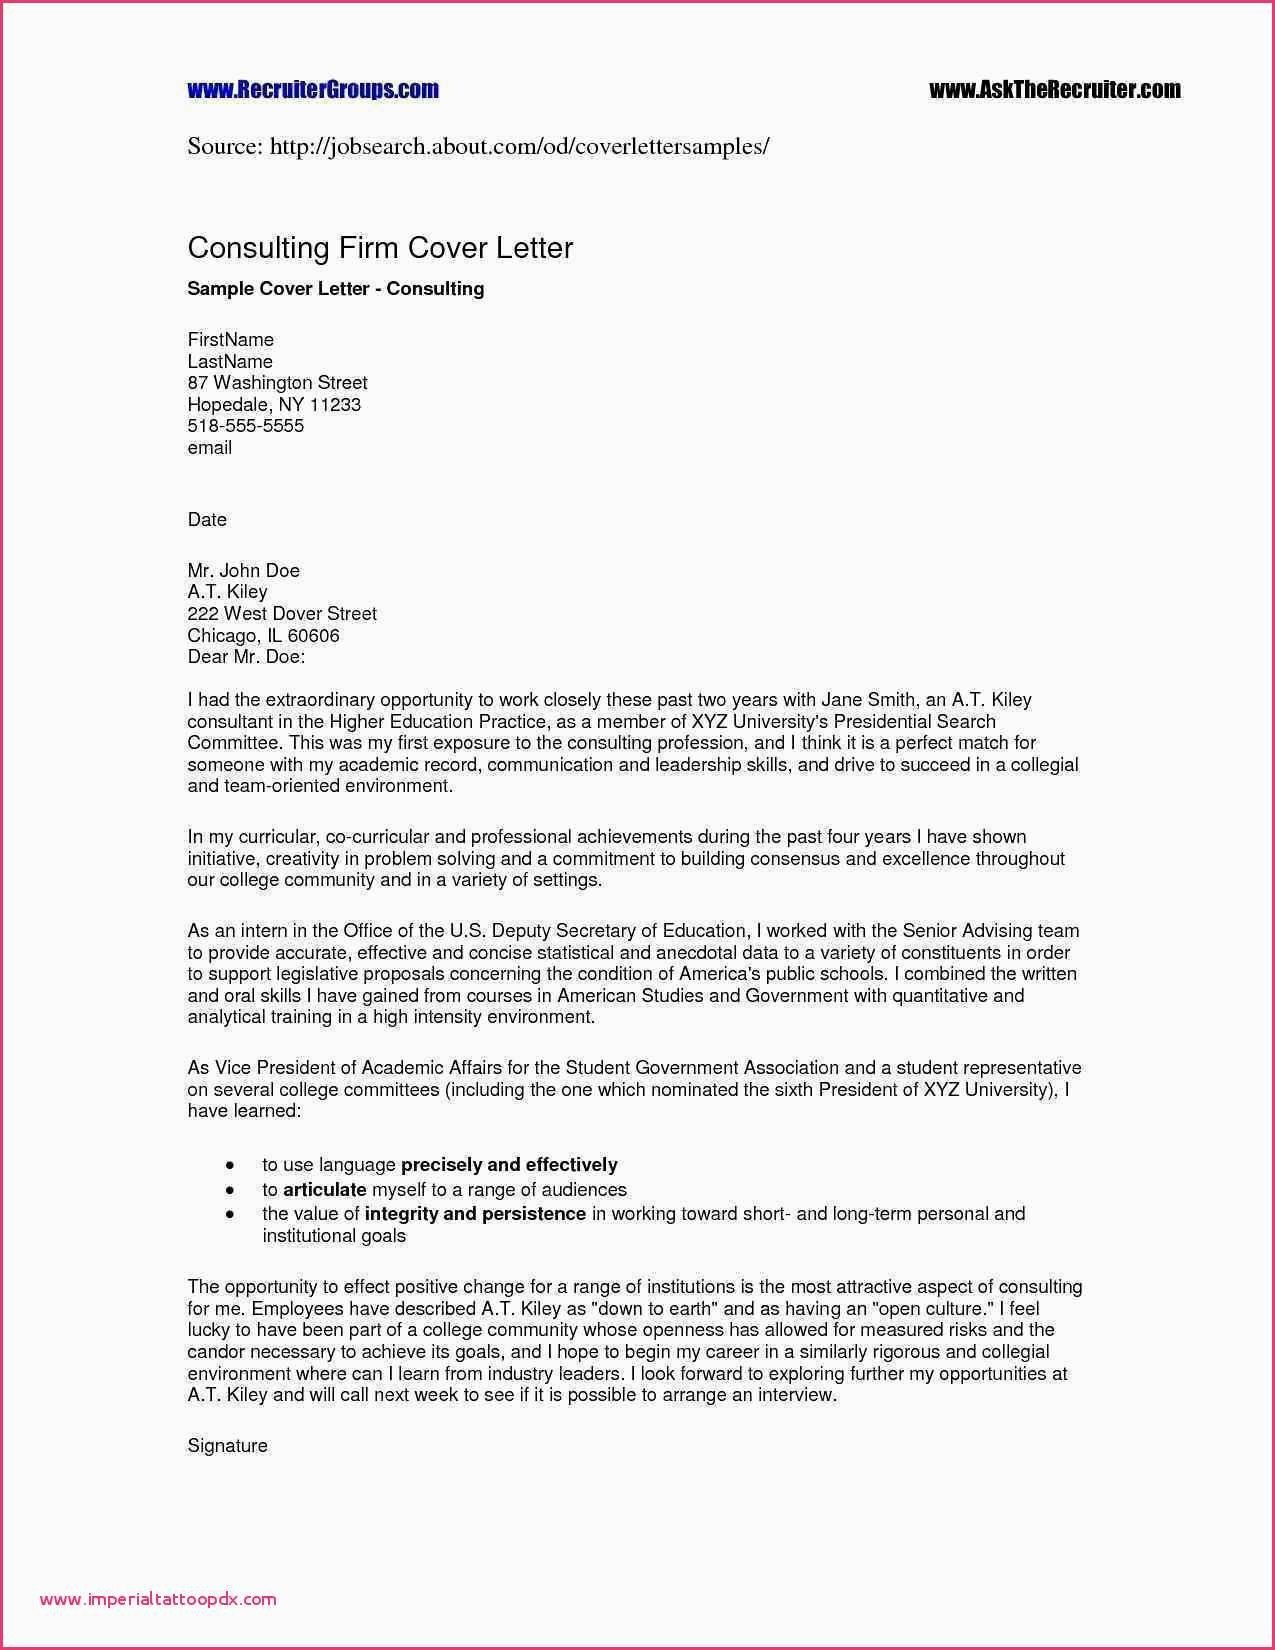 df33ac0ccca6d903546f6a034fb58367 - Carpenter Cover Letter Job Application